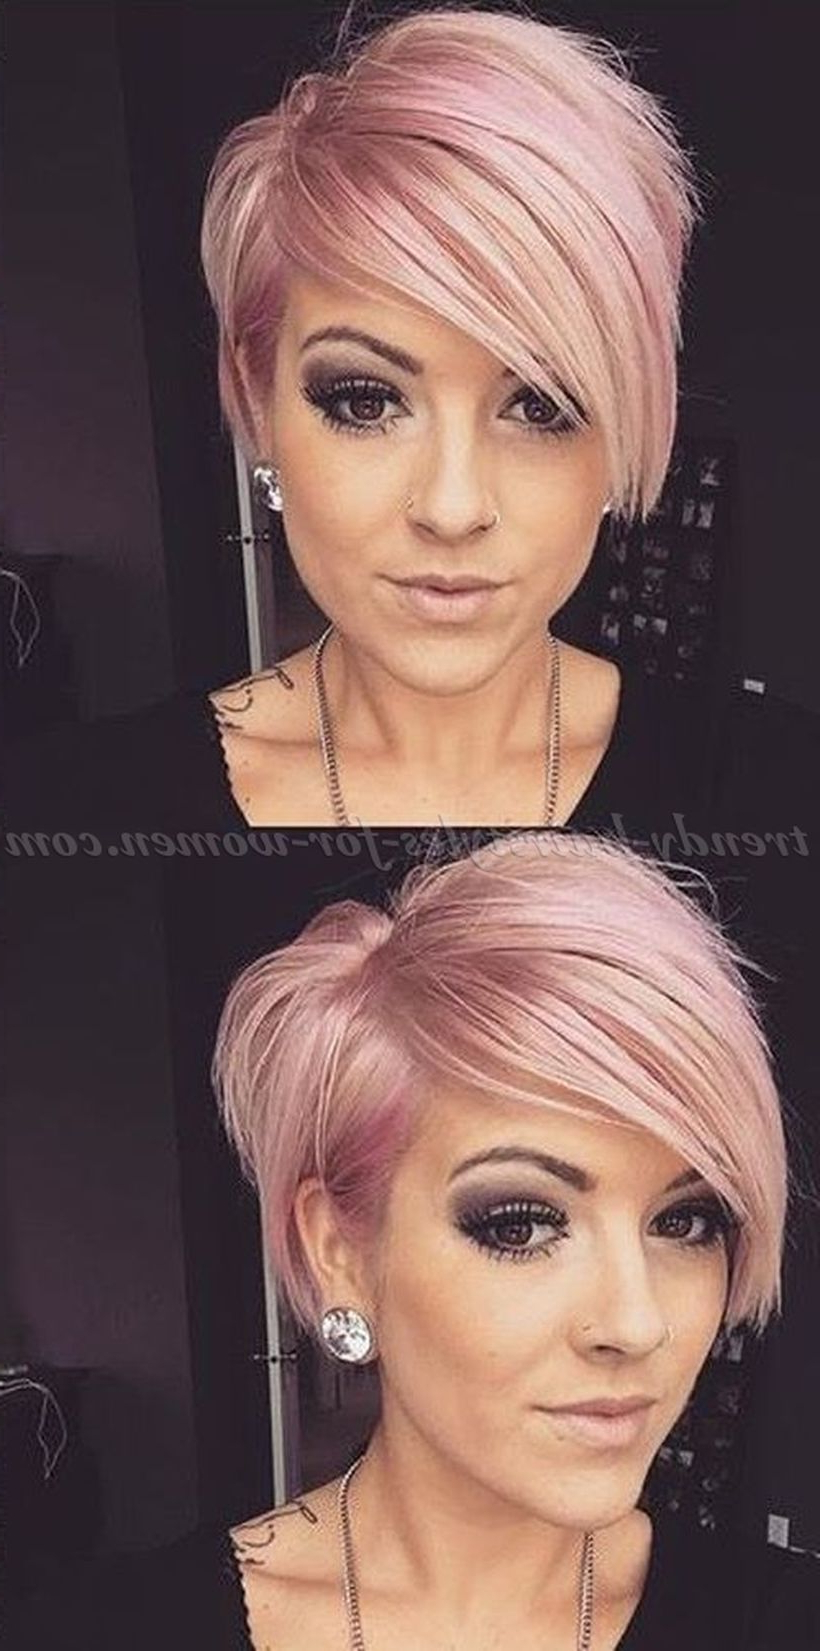 Funky Short Pixie Haircut With Long Bangs Ideas 1 Throughout Most Recent Edgy Undercut Pixie Hairstyles With Side Fringe (View 1 of 20)